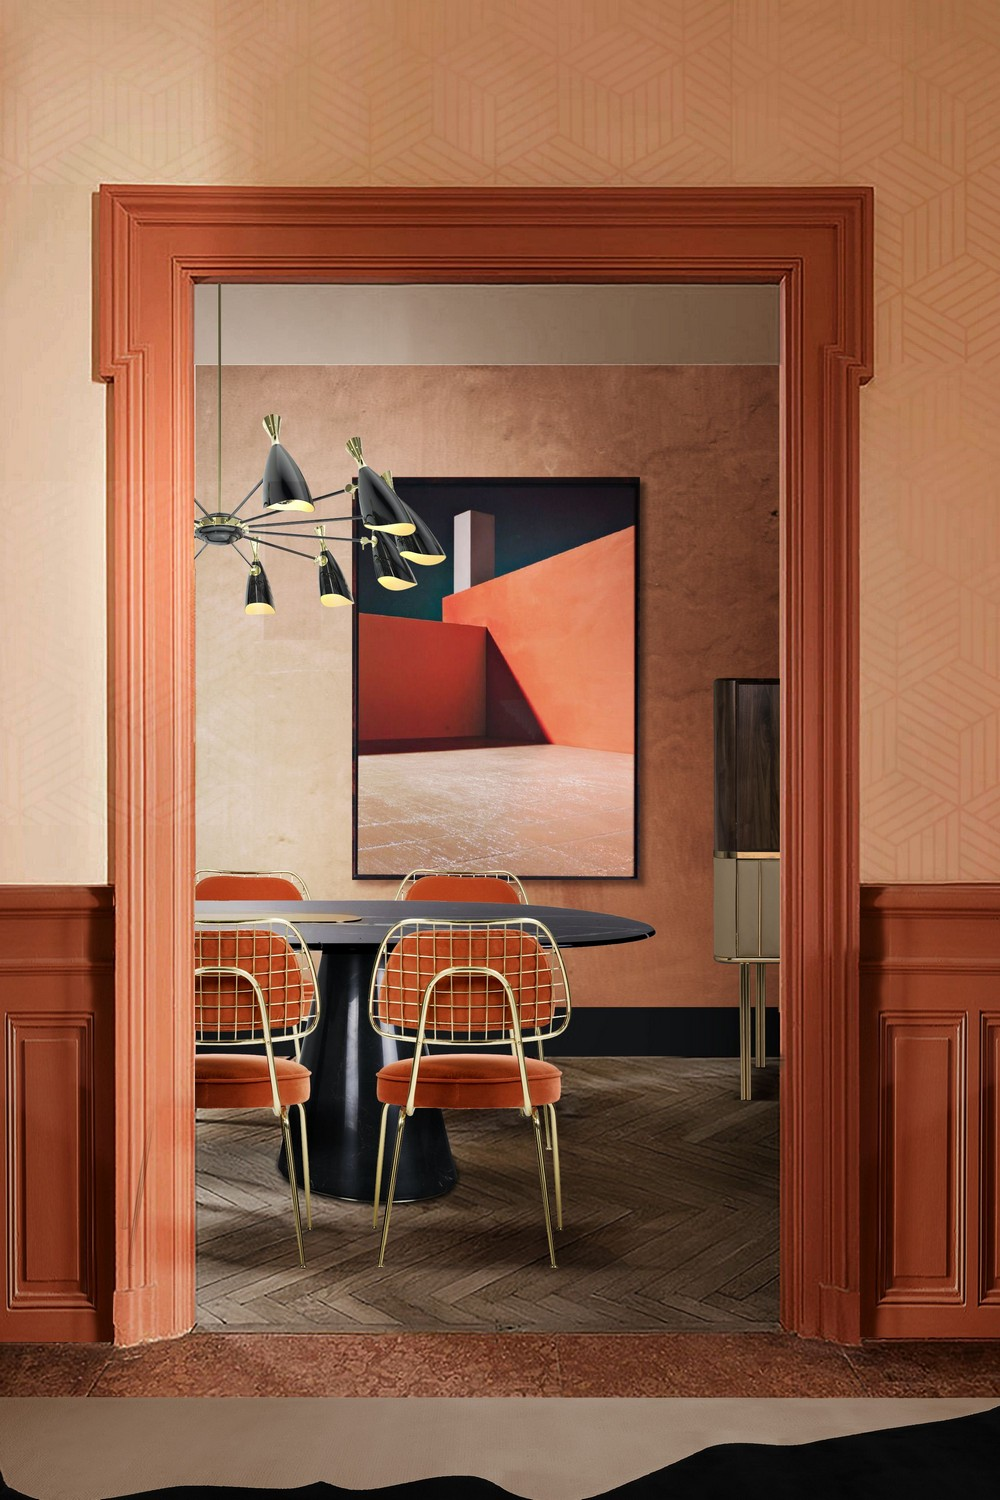 Dining Room Styling: The Best Winter Design Trends For 2020 dining room styling Dining Room Styling: The Best Winter Design Trends For 2020 ecledctic glamour winter design trends Dining Room Styling: The Best Winter Design Trends ecledctic glamour